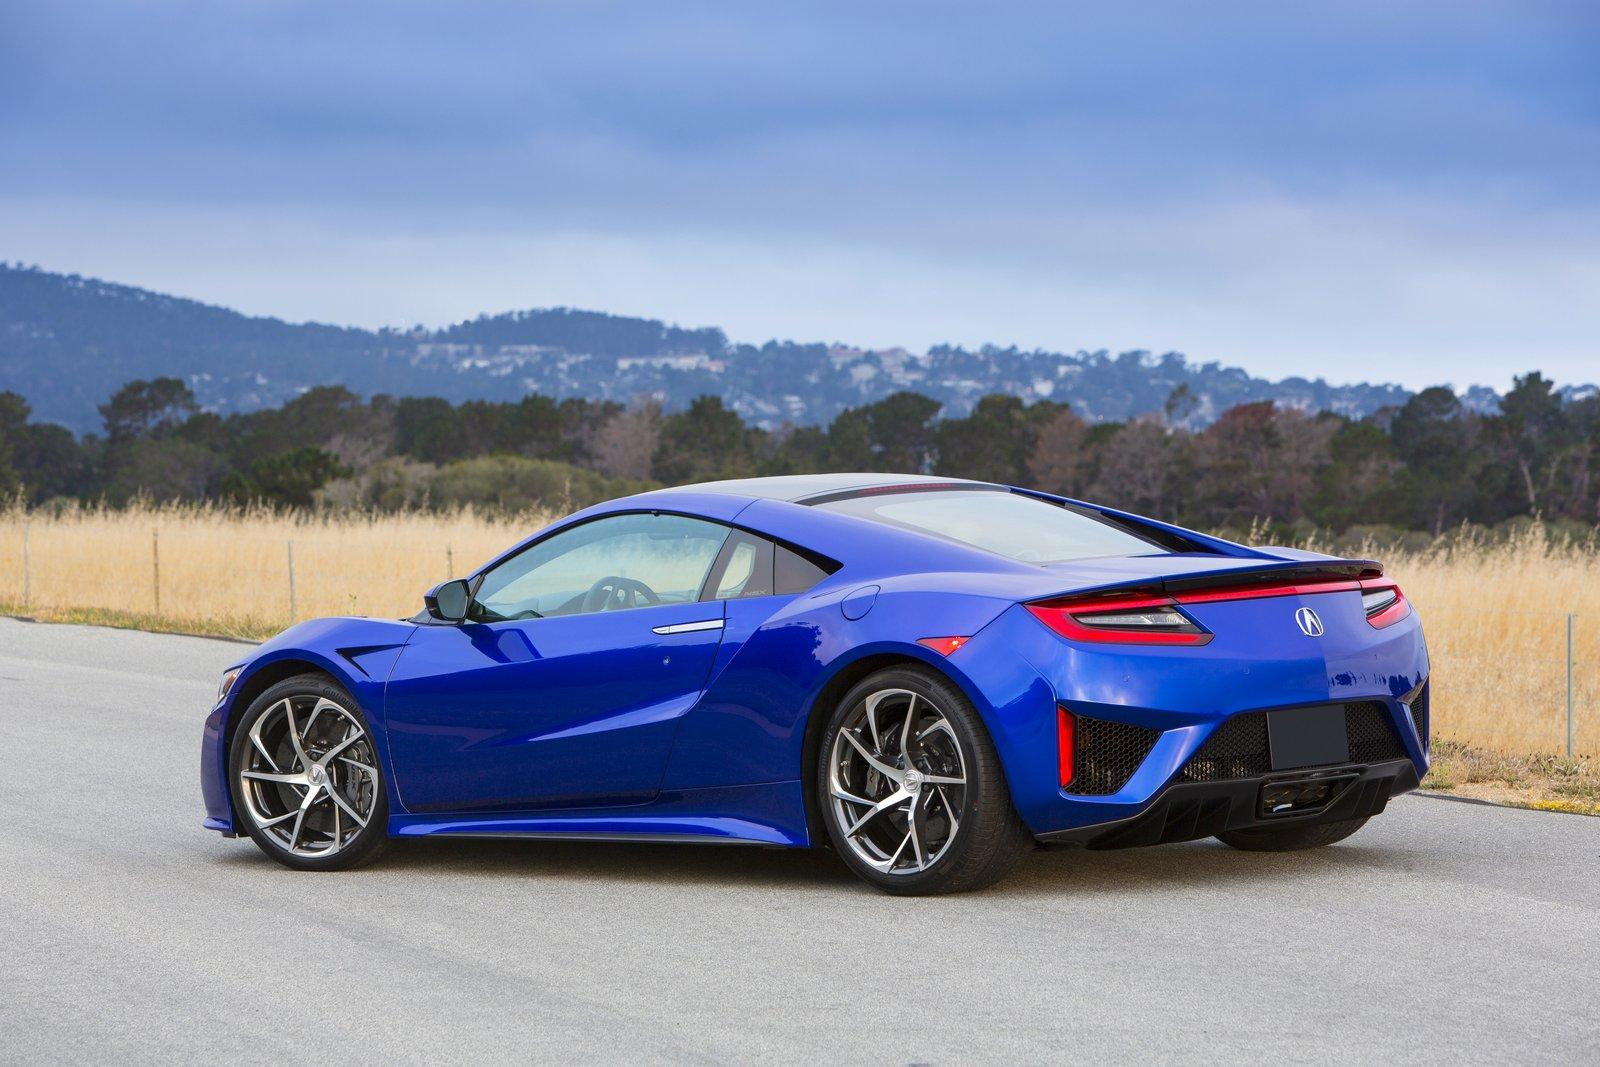 2017 Acura NSX will have 573 bhp and 476 lb-ft - Speed Carz